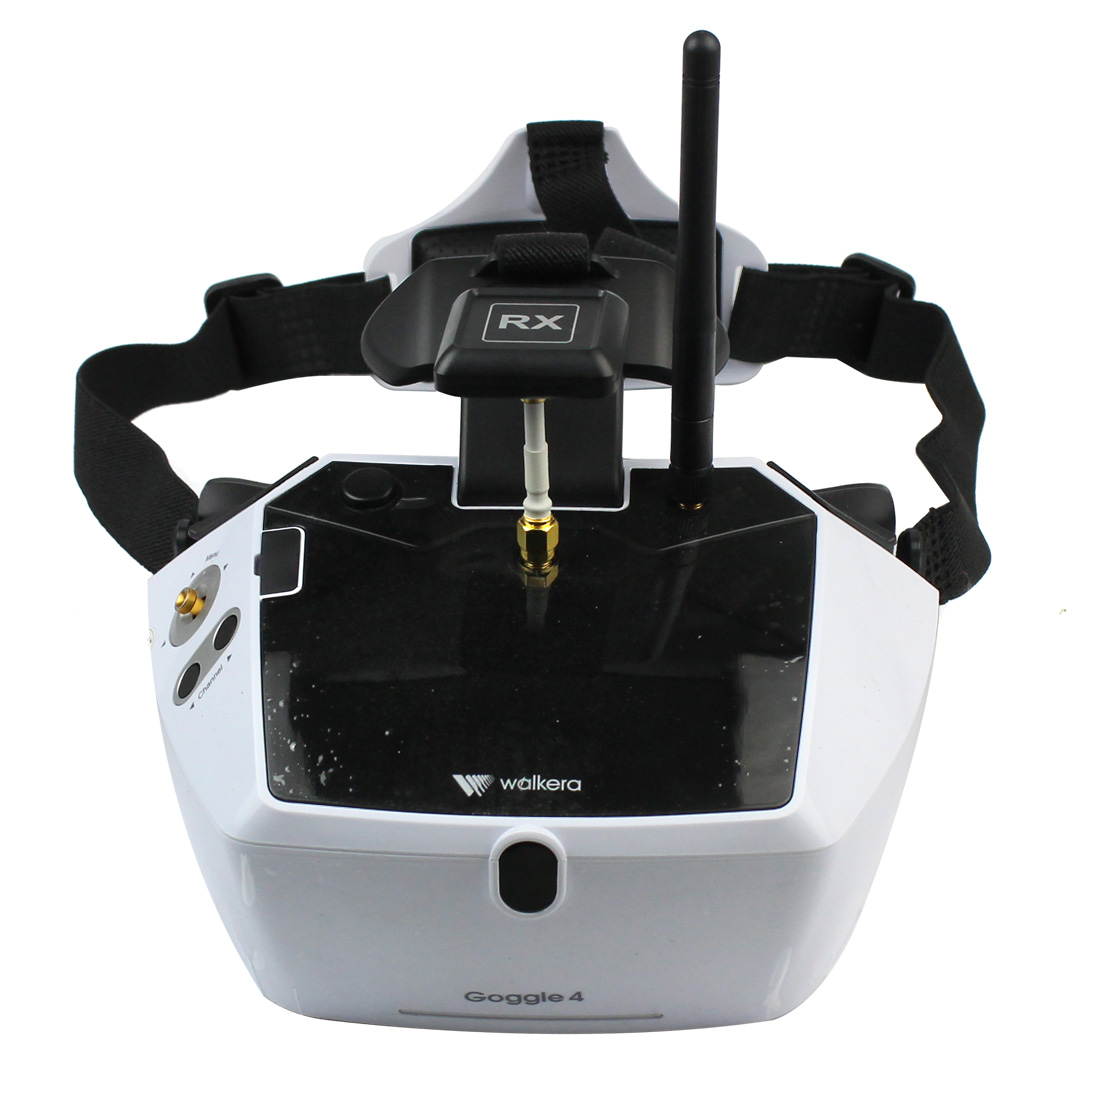 Original Walkera 5 8G 40channels Goggle4 Goggle 4 FPV Video image transmission glasses FPV spectacles with